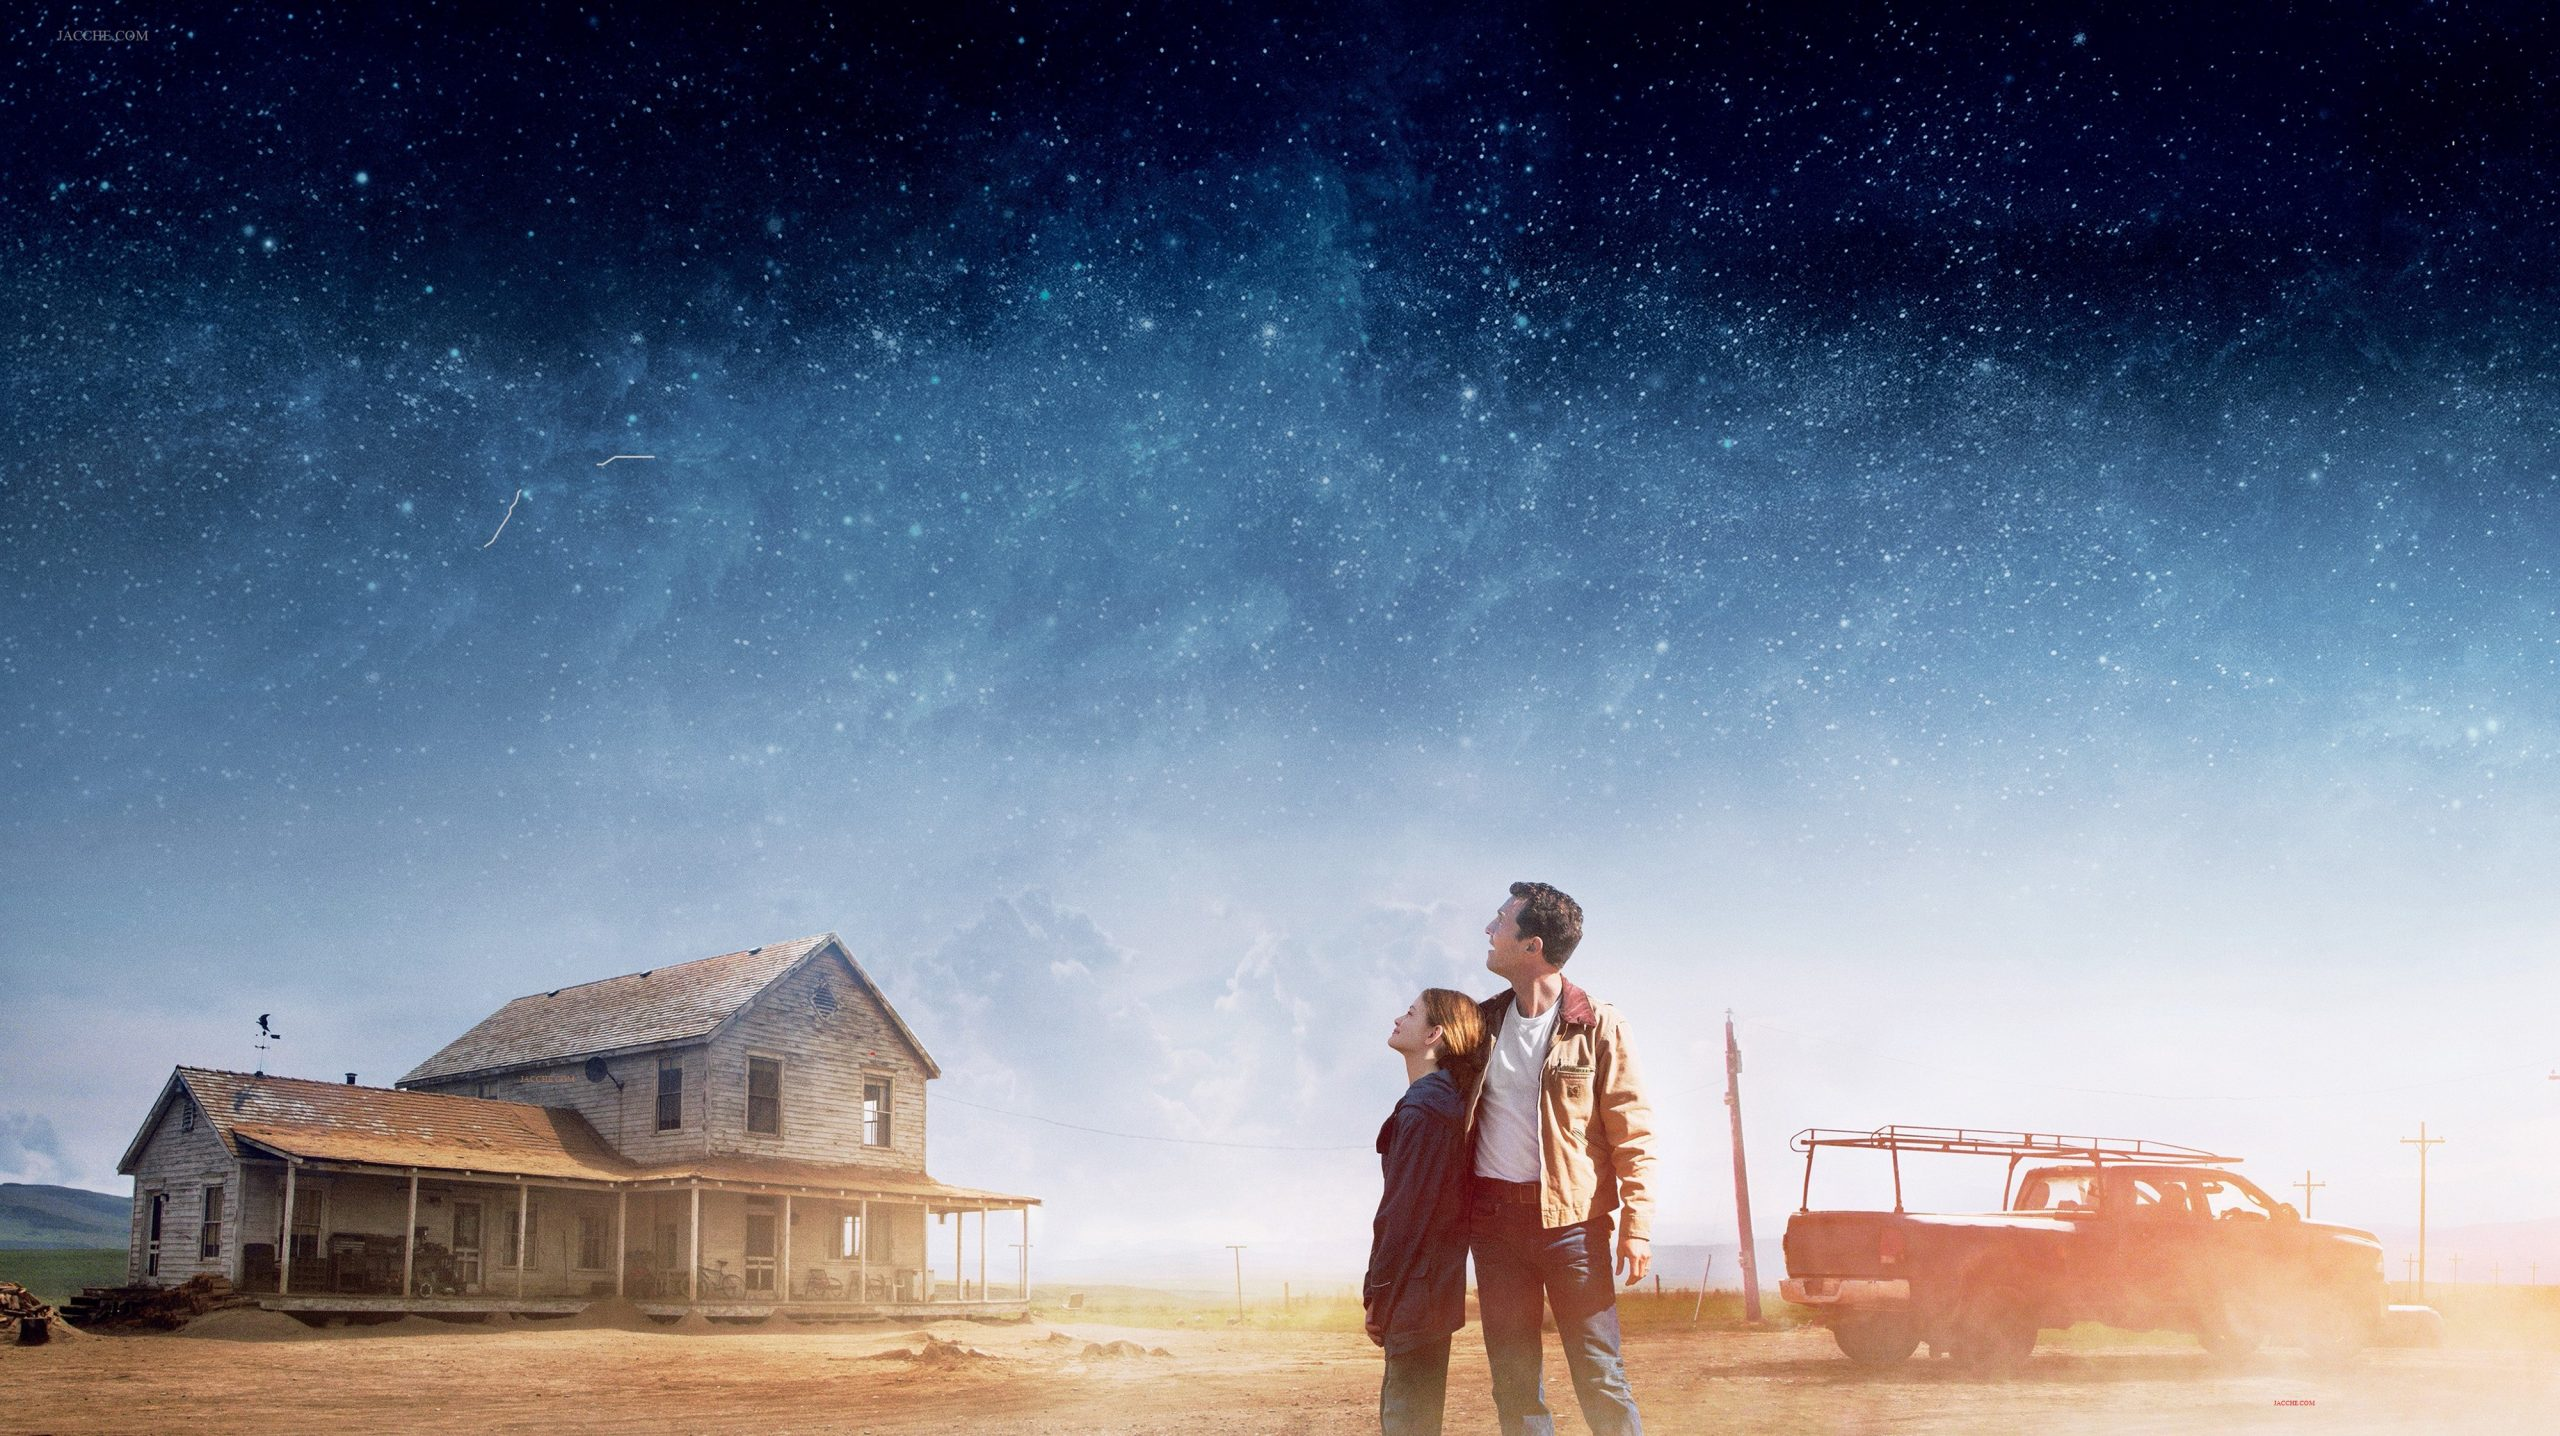 Interstellar-2014 movie image